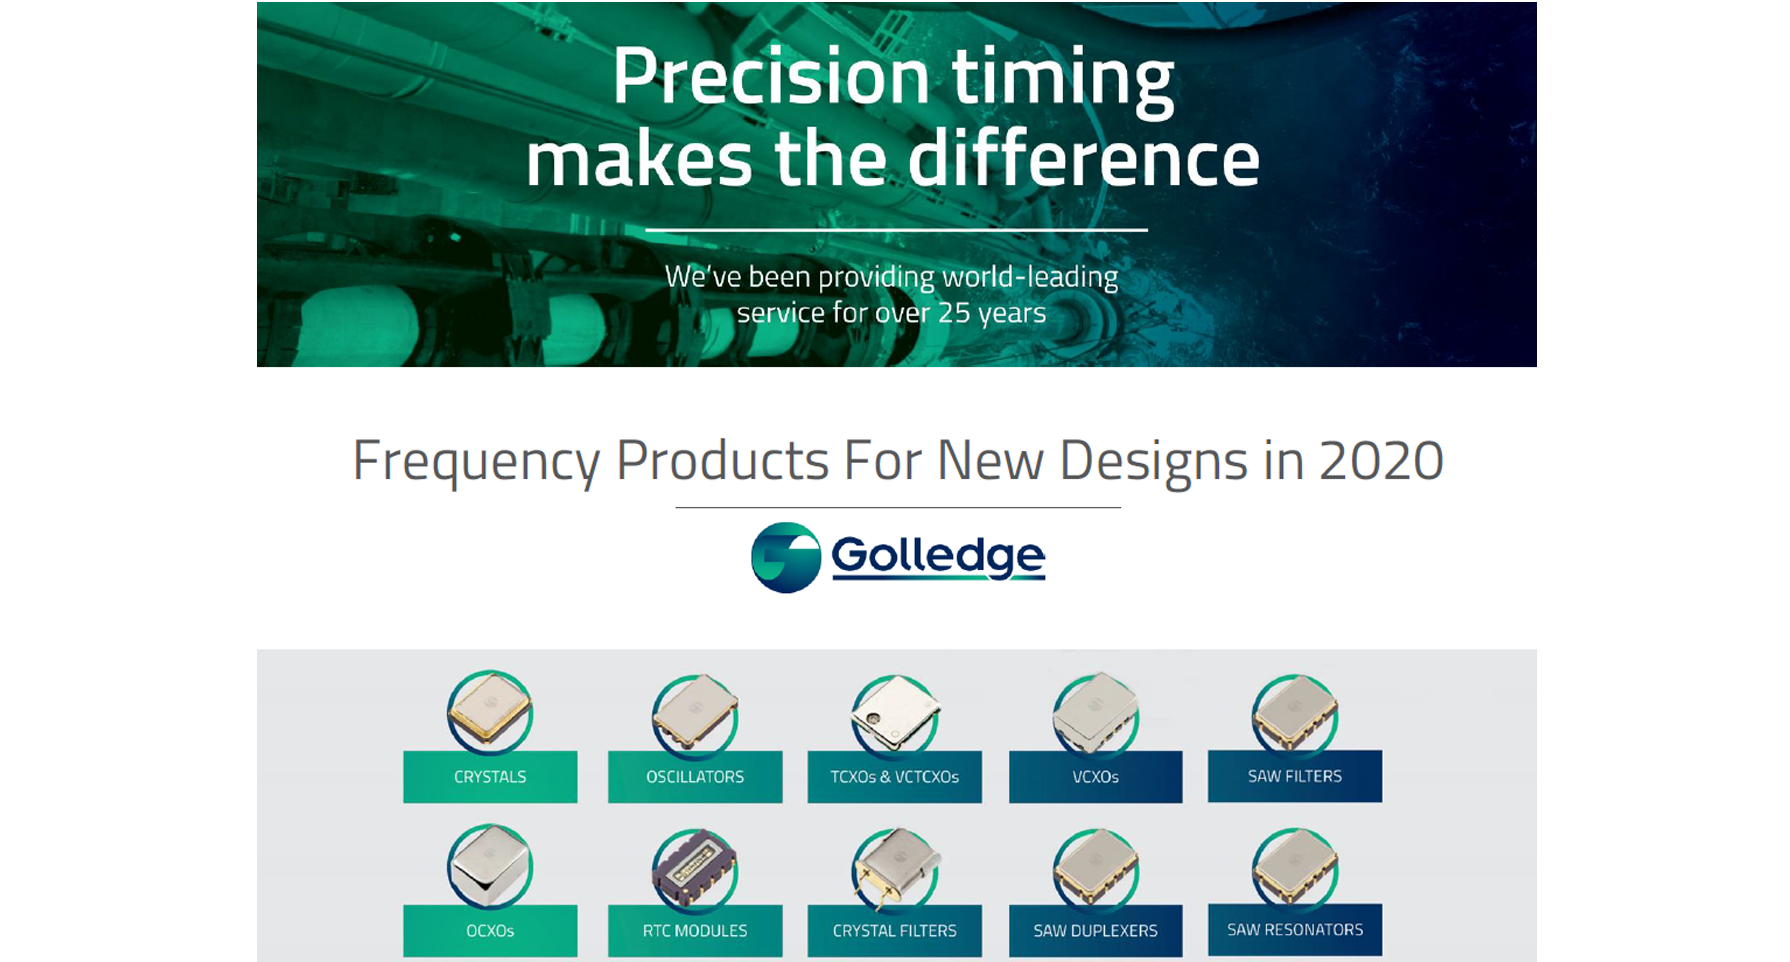 Golledge Electronics are proud to announce the update and release of their Frequency Products for New Designs Catalogue for 2020.